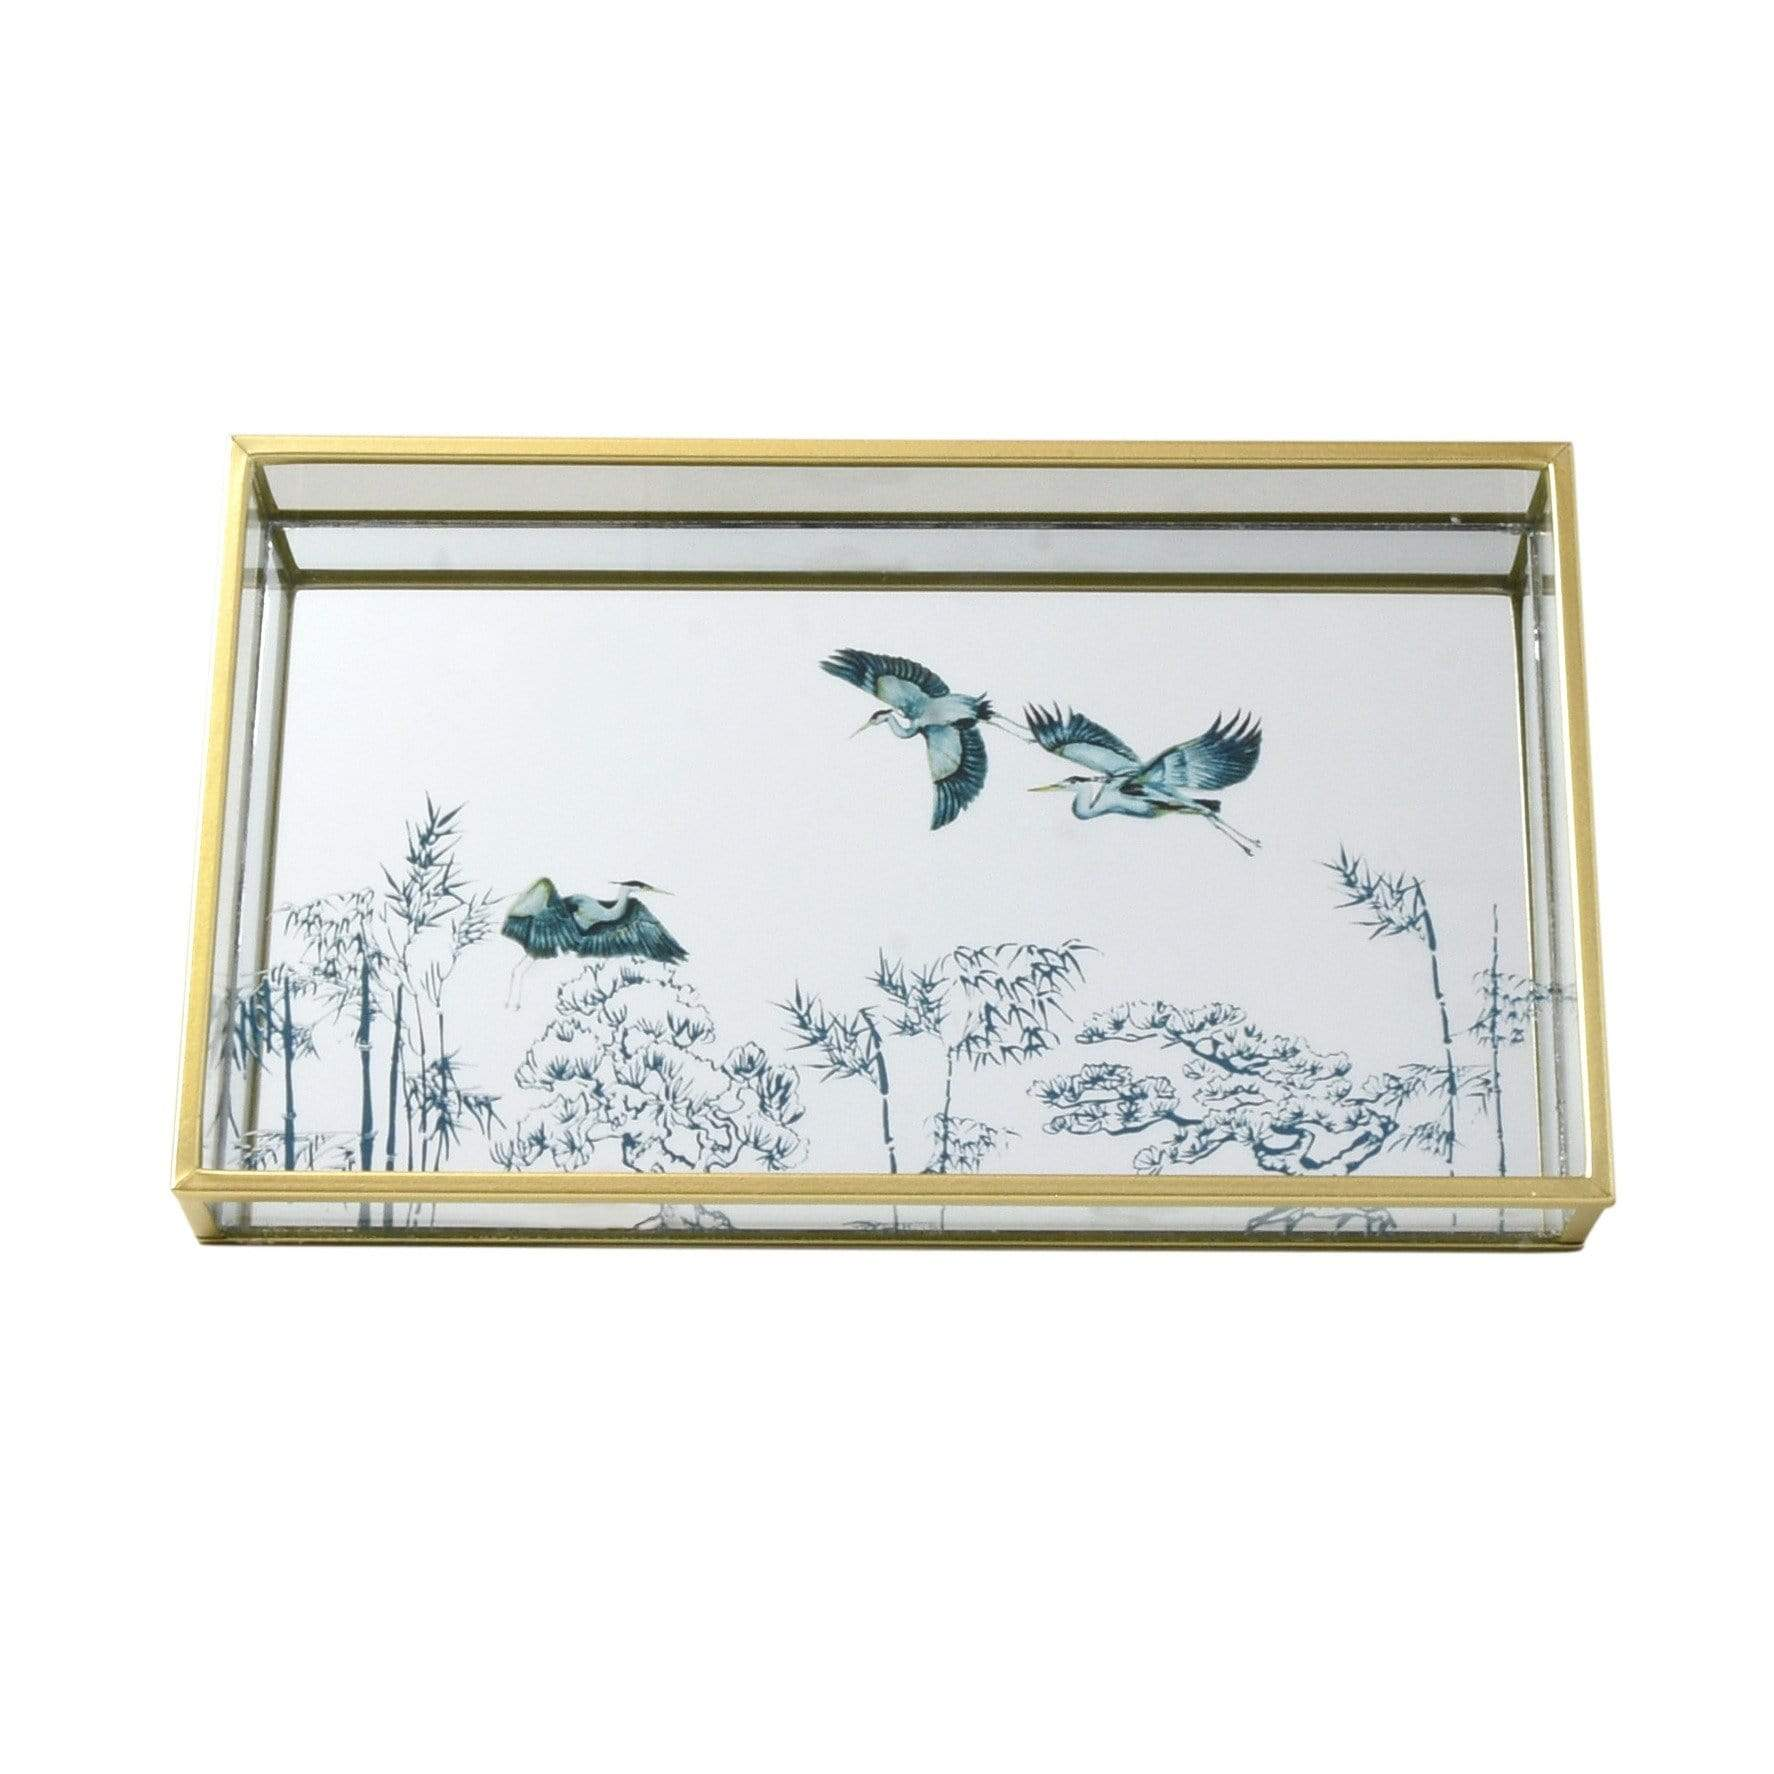 Mirrored Glass Tray in Gold with Oriental Heron Design 3PK